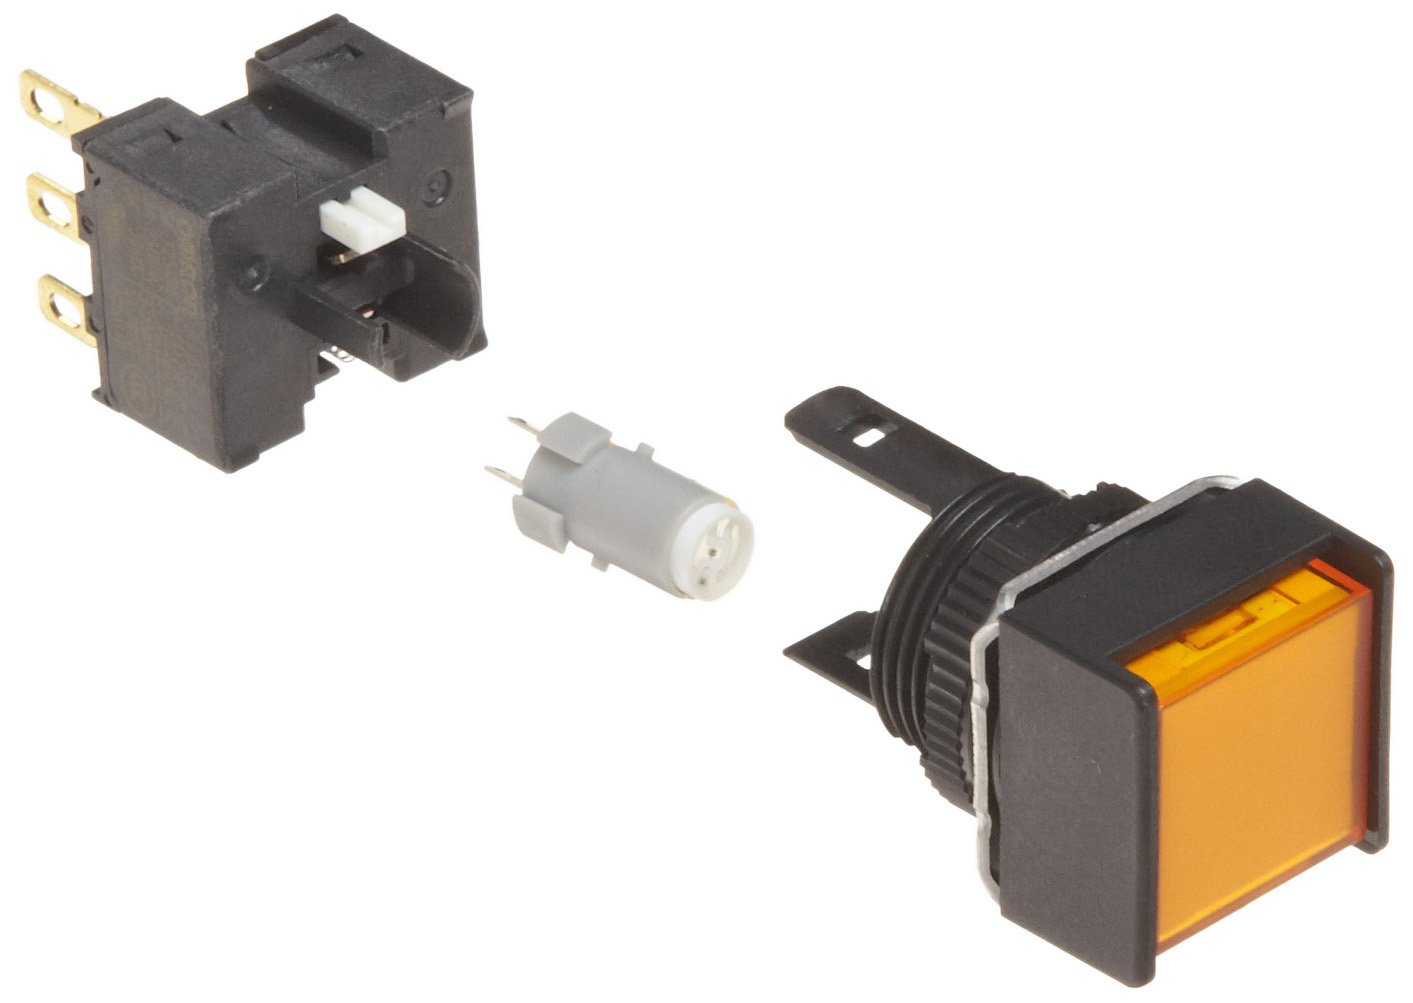 Omron A165L-AYM-5D-1 Two Way Guard Type Pushbutton and Switch, Solder Terminal, IP65 Oil-Resistant, 16mm Mounting Aperture, LED Lighted, Momentary Operation, Square, Yellow, 5 VDC Rated Voltage, Single Pole Double Throw